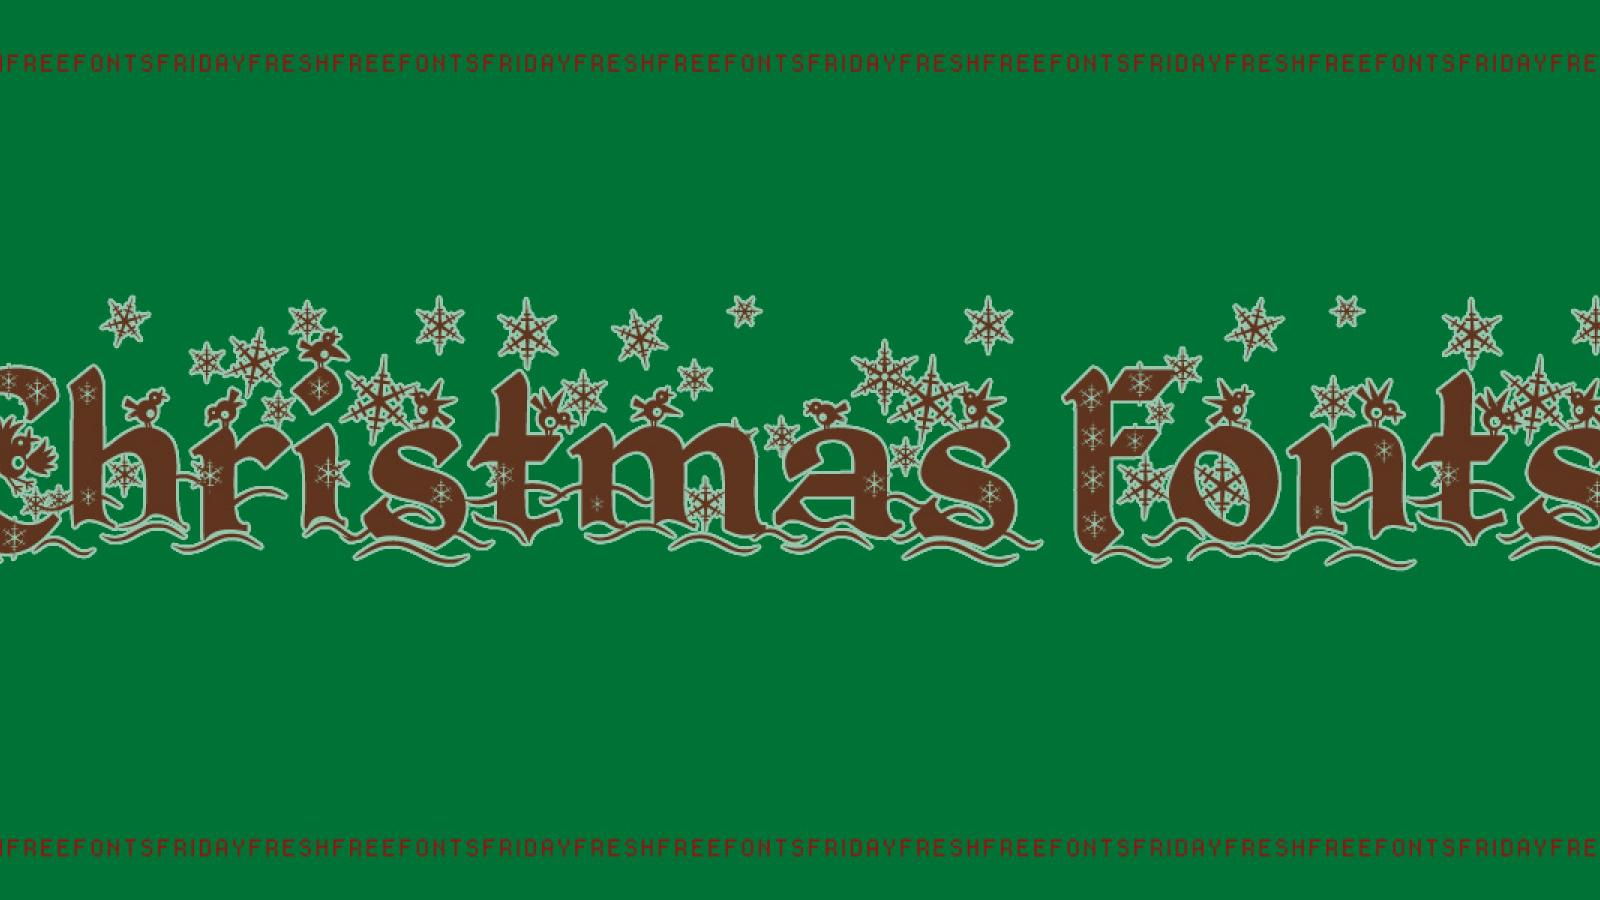 Friday Fresh Free Fonts - Christmas Card, Kingthings Christmas ...